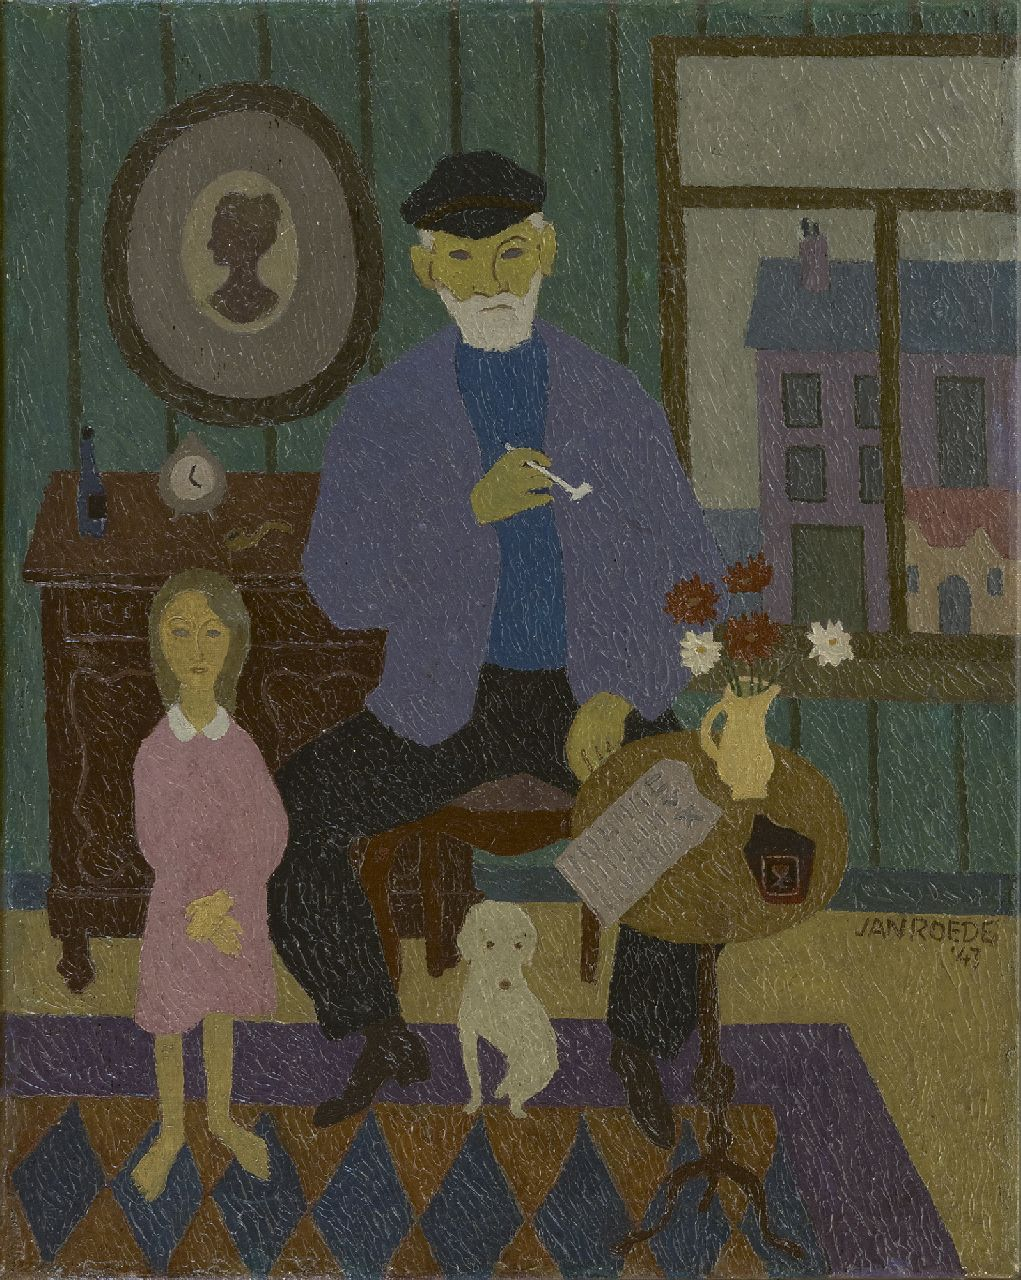 Roëde J.  | Jan Roëde | Paintings offered for sale | Grandfather and granddaughter, oil on canvas 50.5 x 40.4 cm, signed l.r. and dated '43